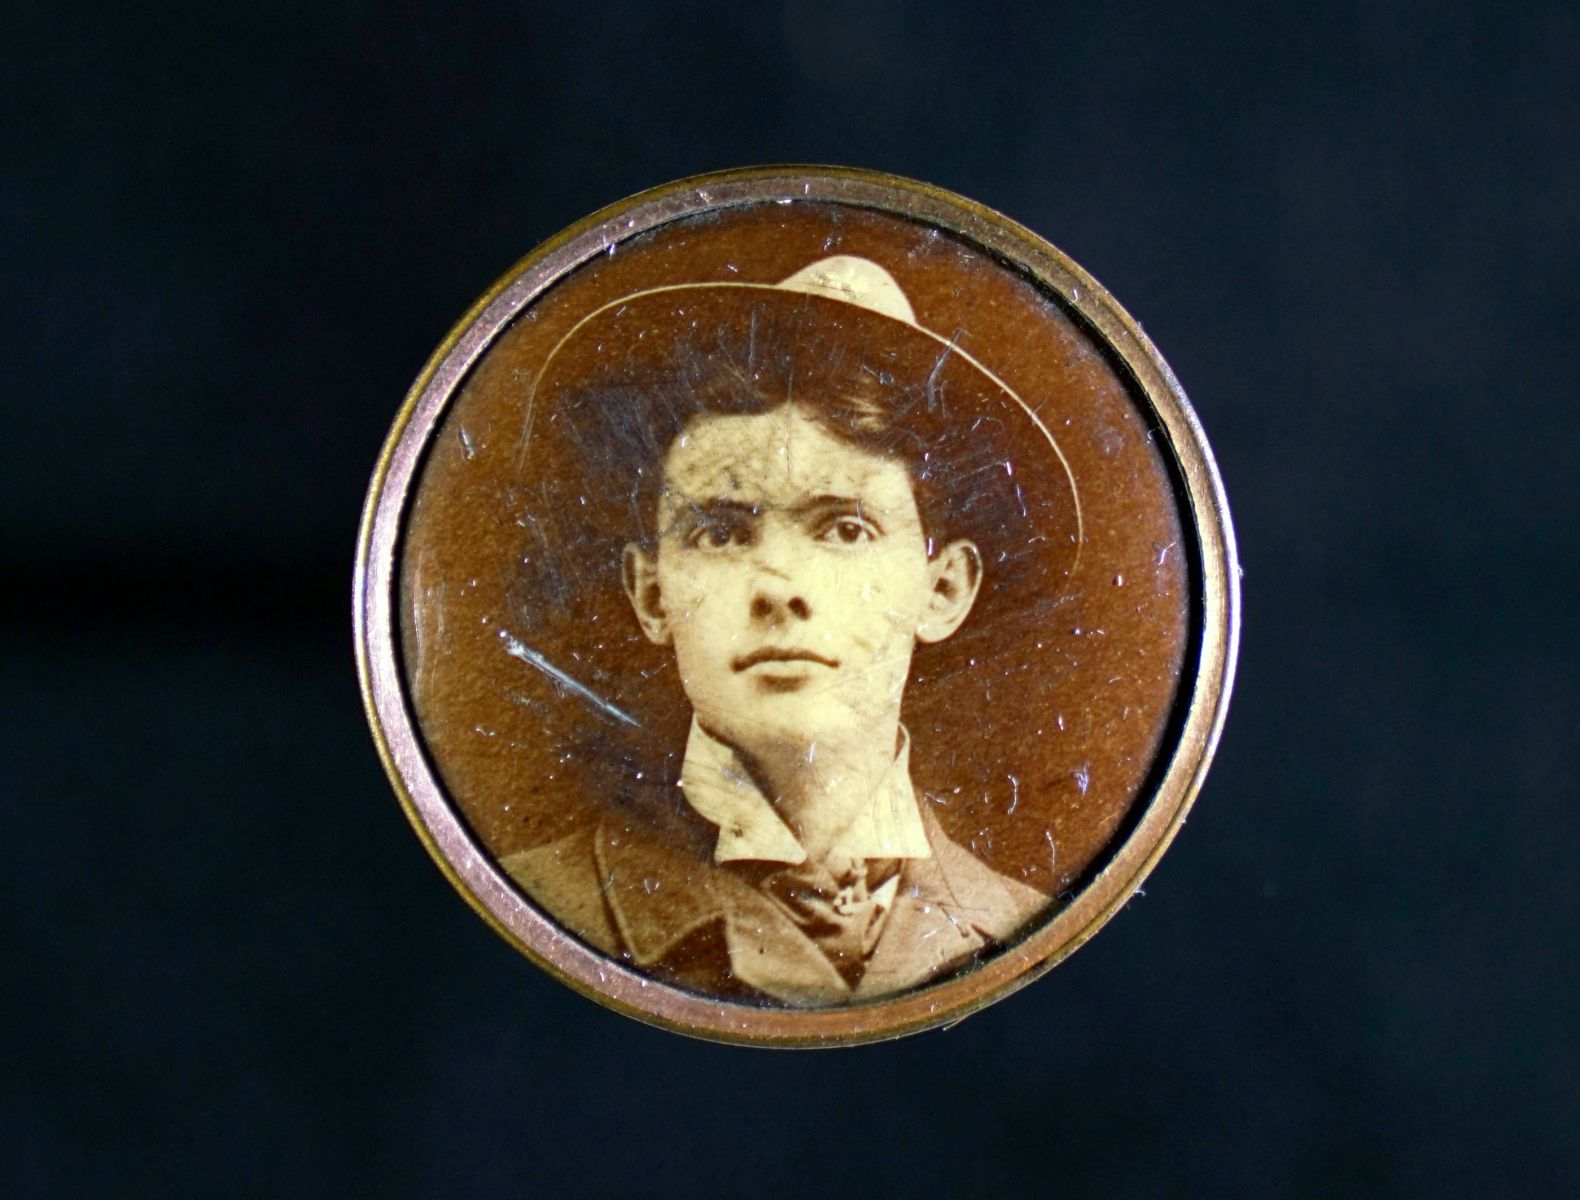 Fig. 4 Lapel button with missing clasp, Unidentified woman, metal, celluloid, and paper, ca. 1910. Author's collection. Digitized by John D. Northrip.